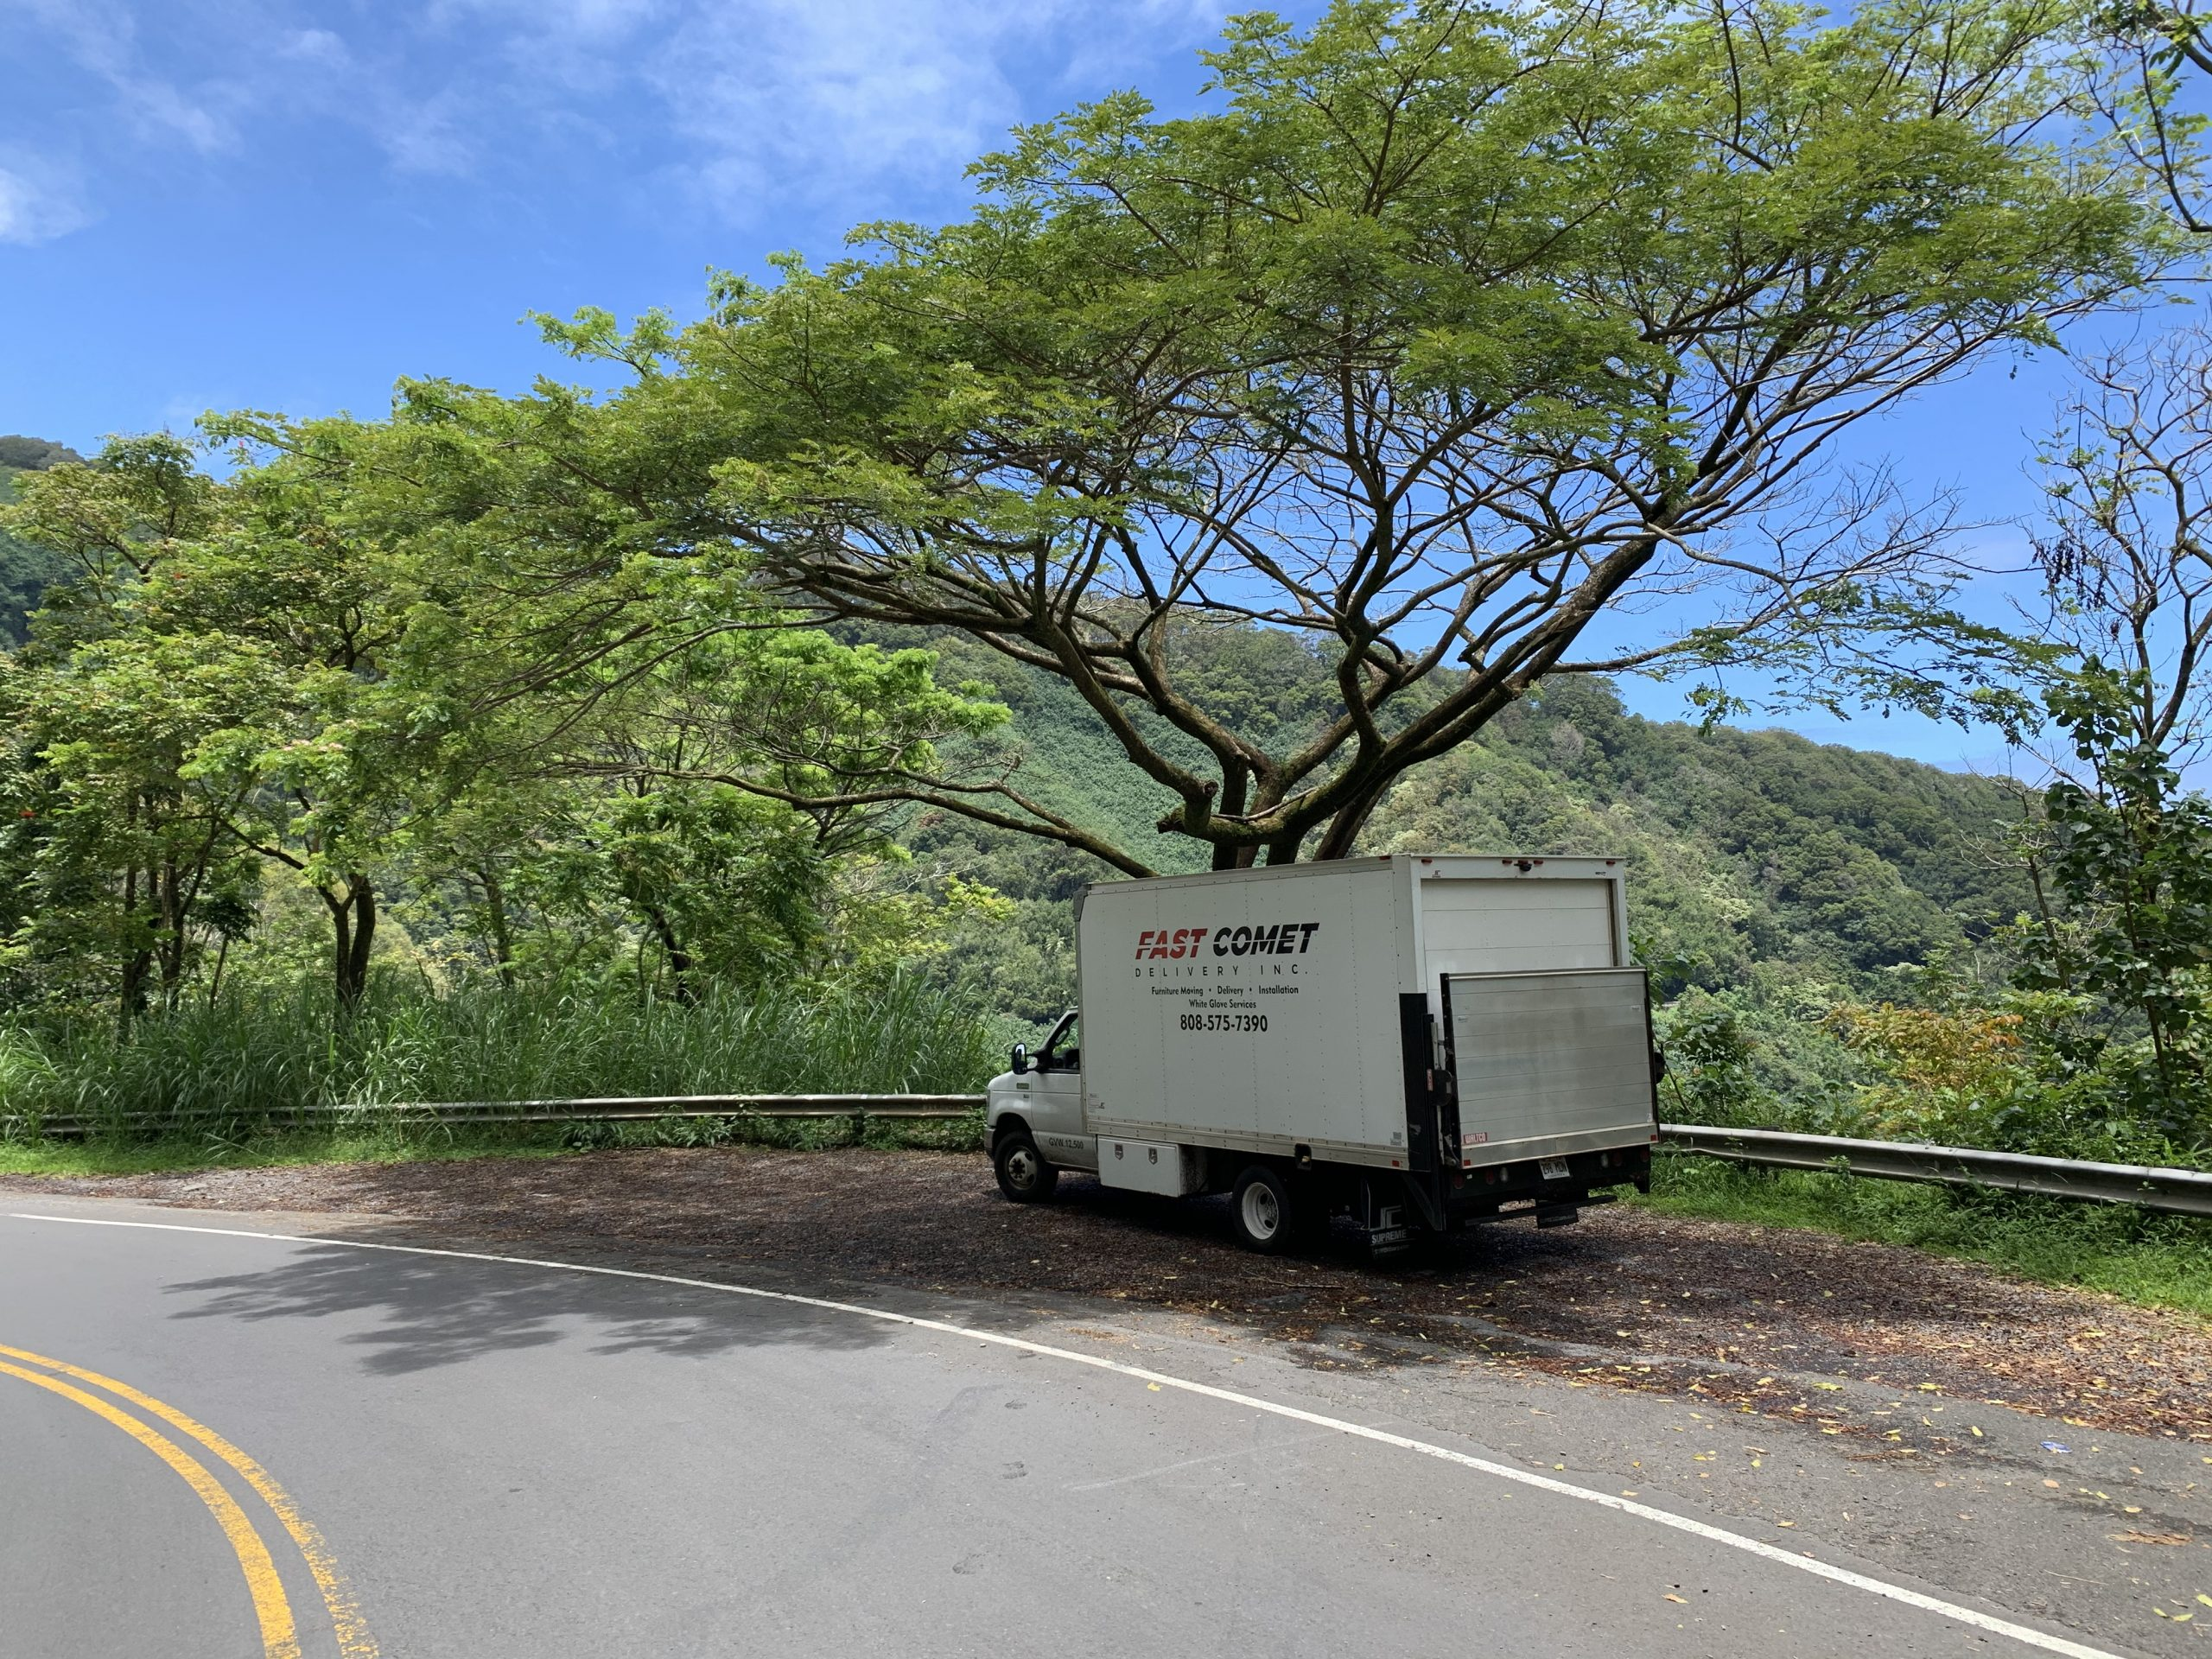 Fast Comet Delivery Truck 8 - Maui Hawaii